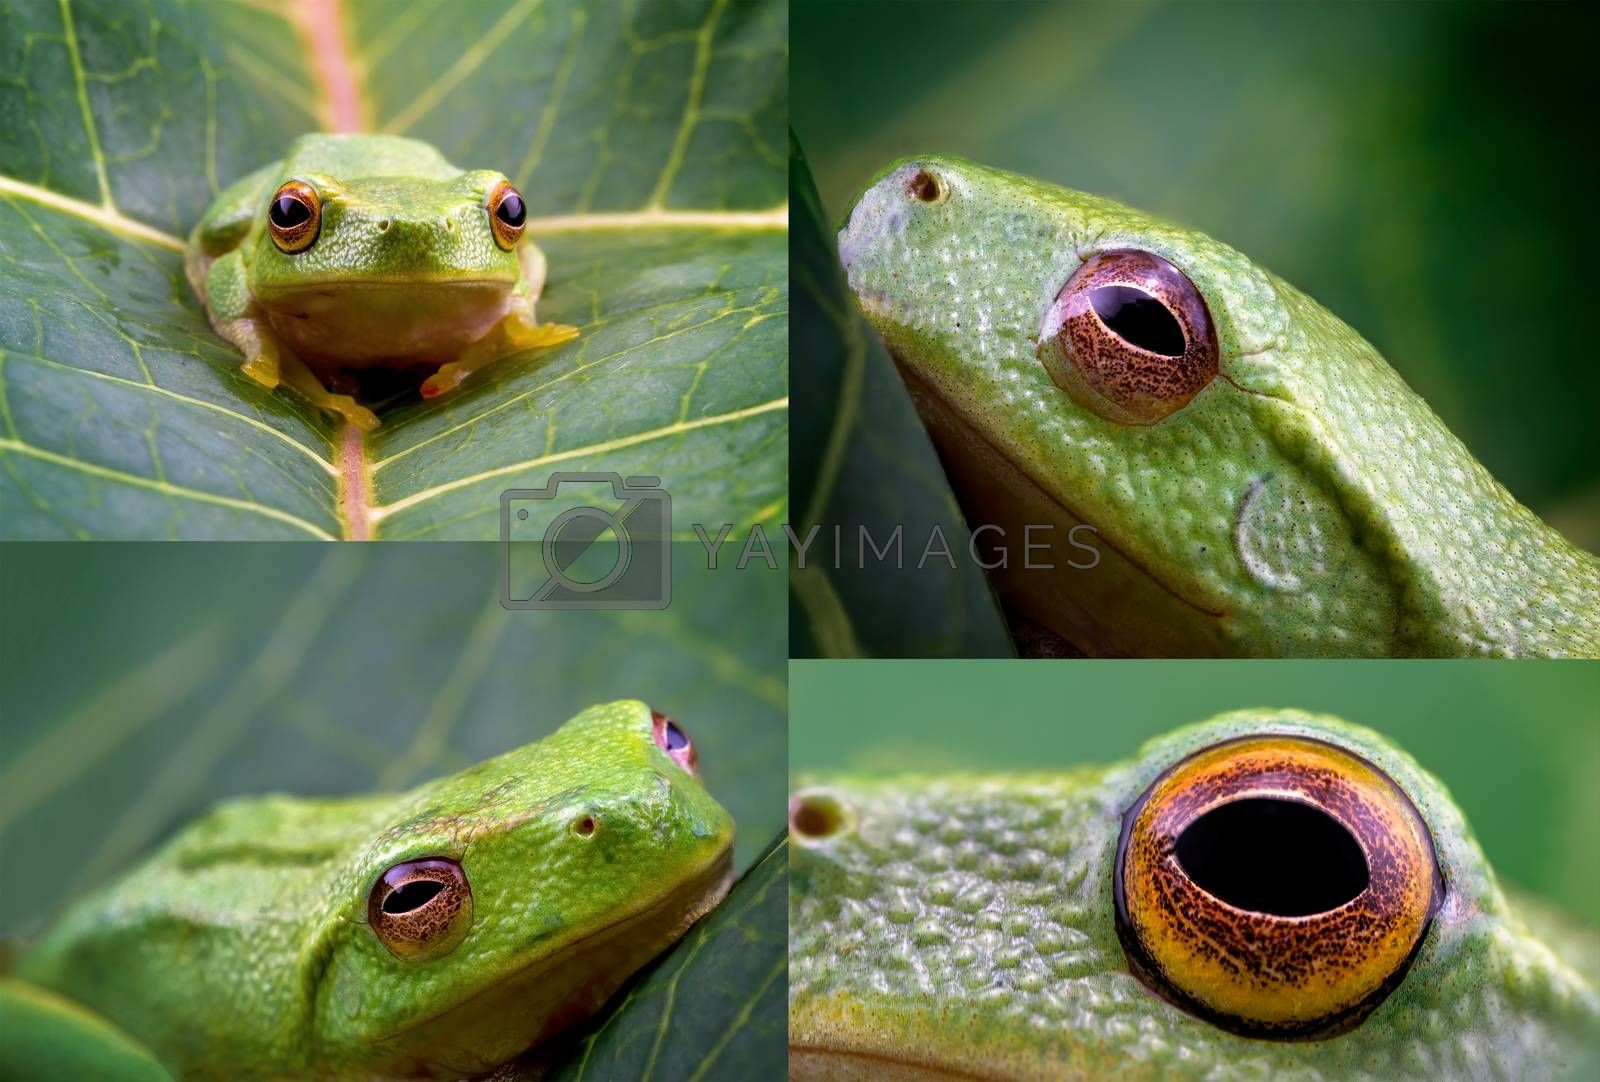 Collage of images of a tiny green frog only 15mm in length, captured in macro